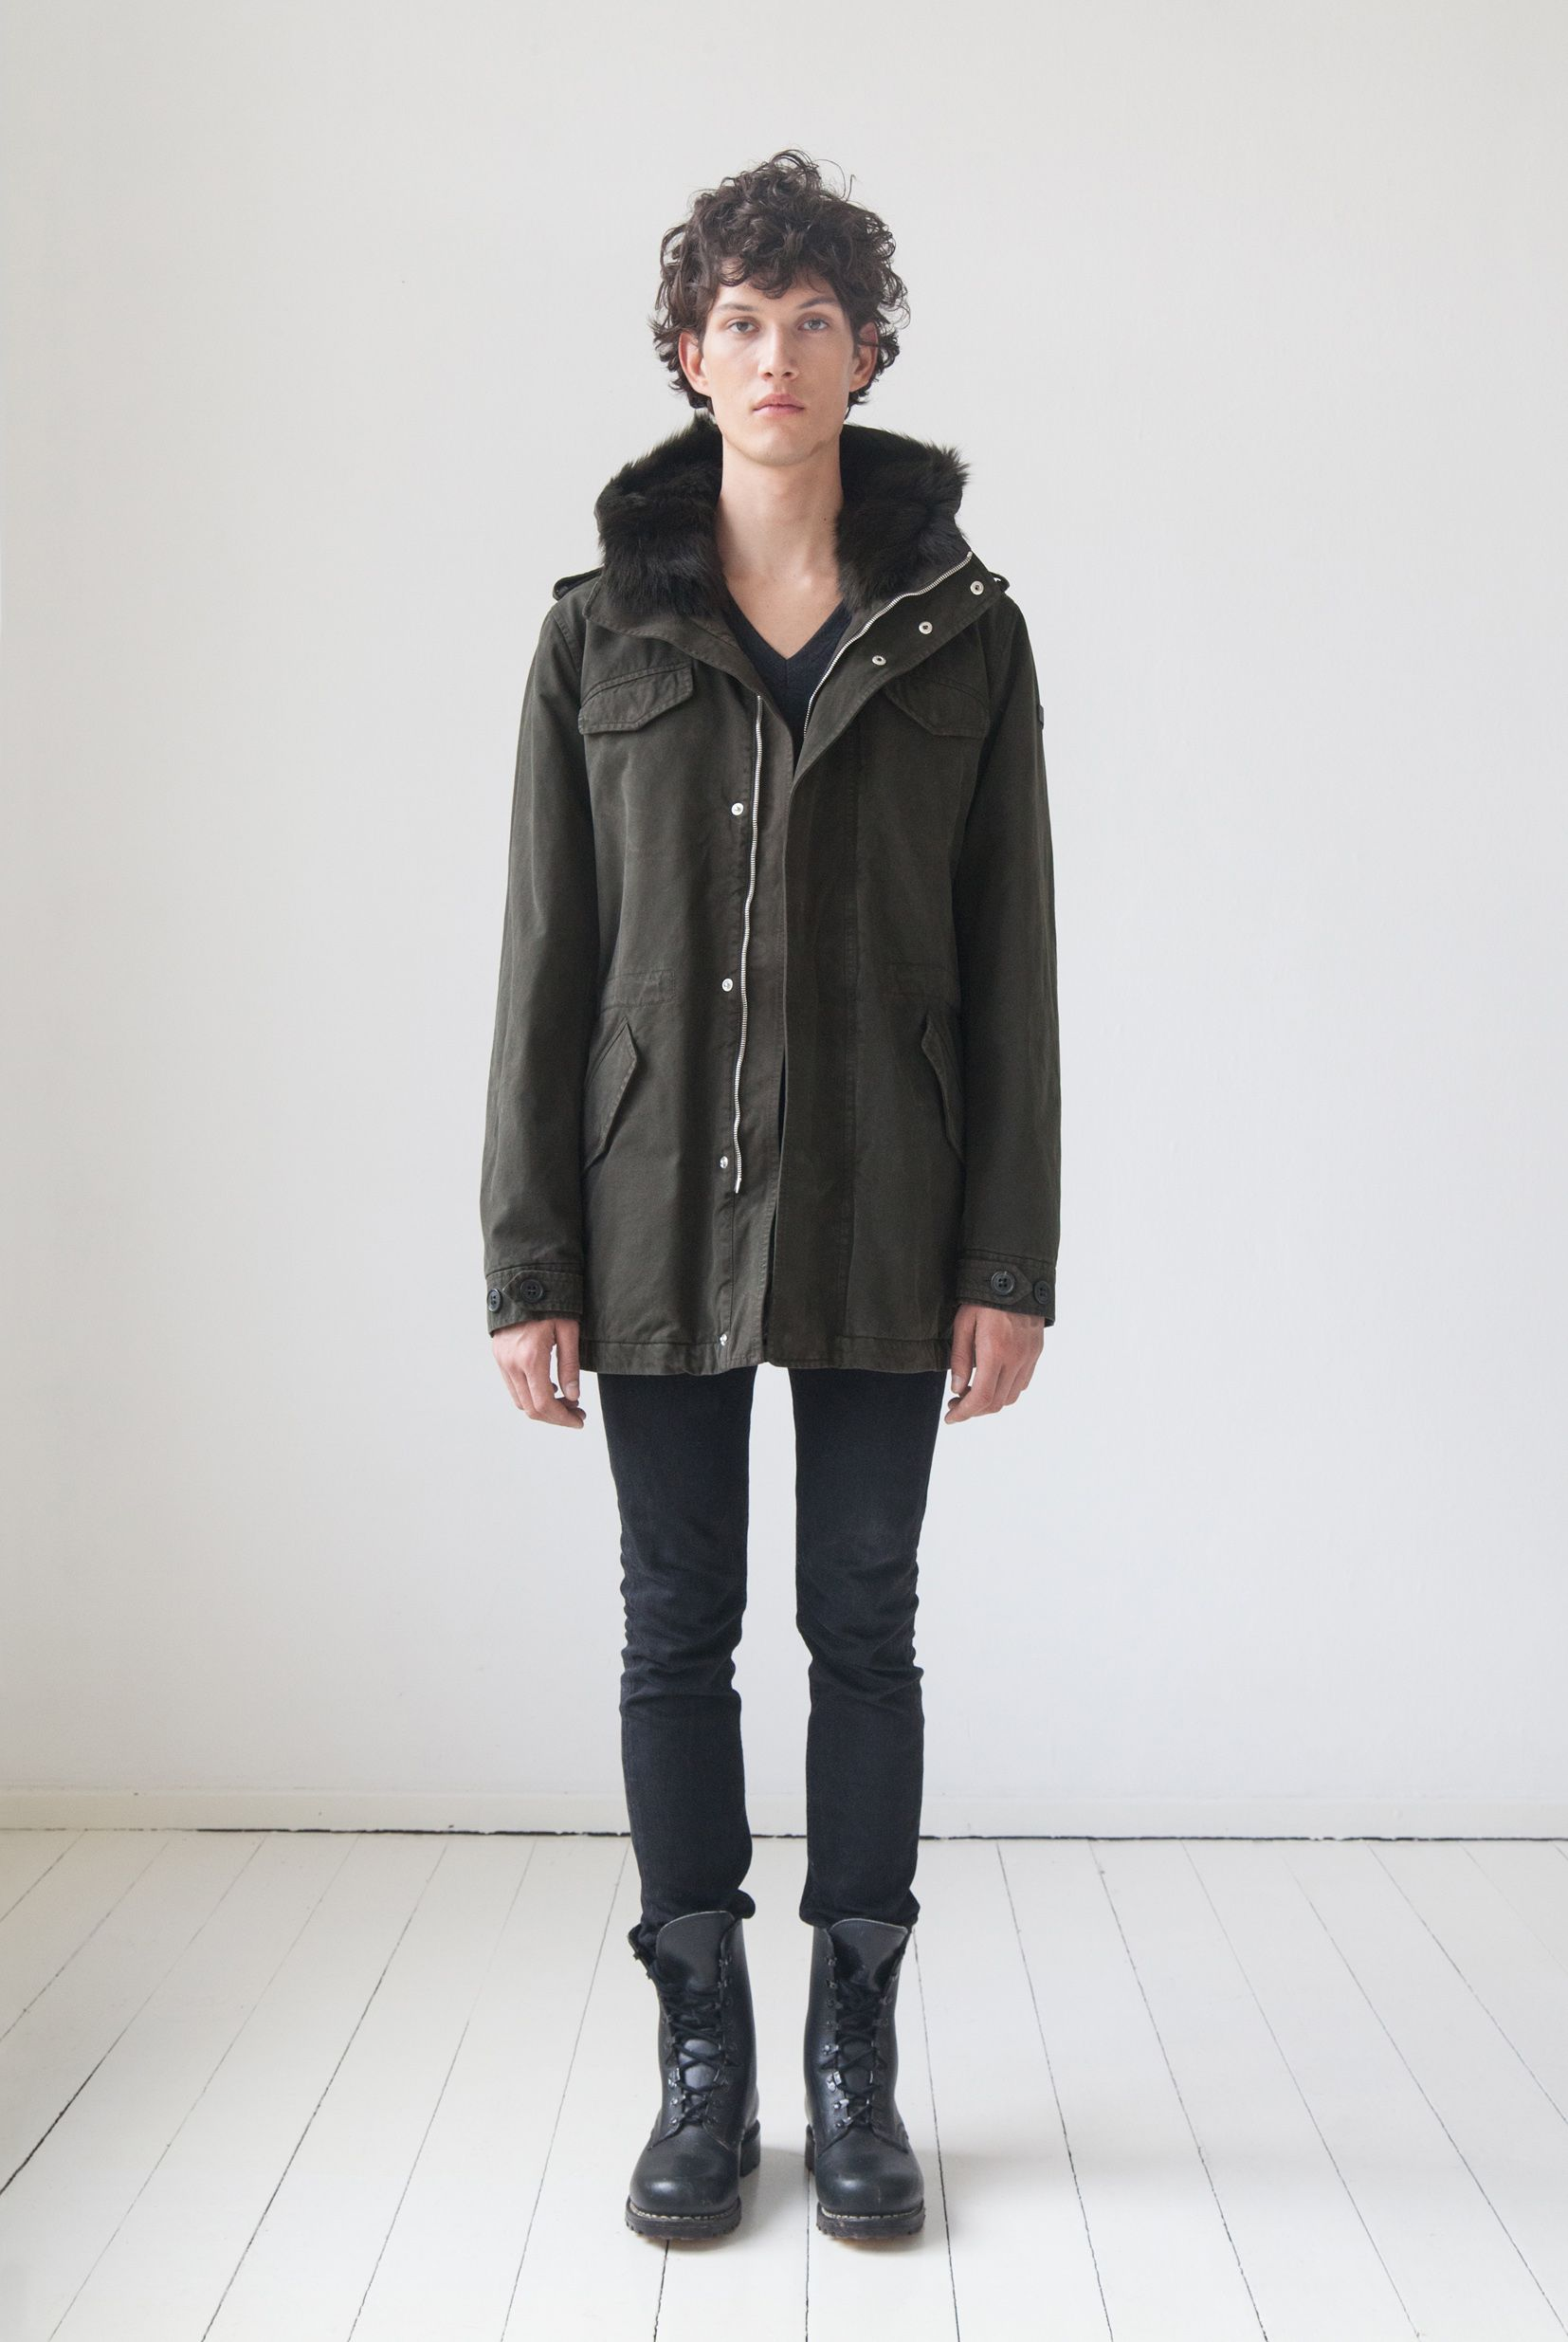 LEMPELIUS Fall Winter 2015 16 Men Dark olive parka jacket with lamb fur hood